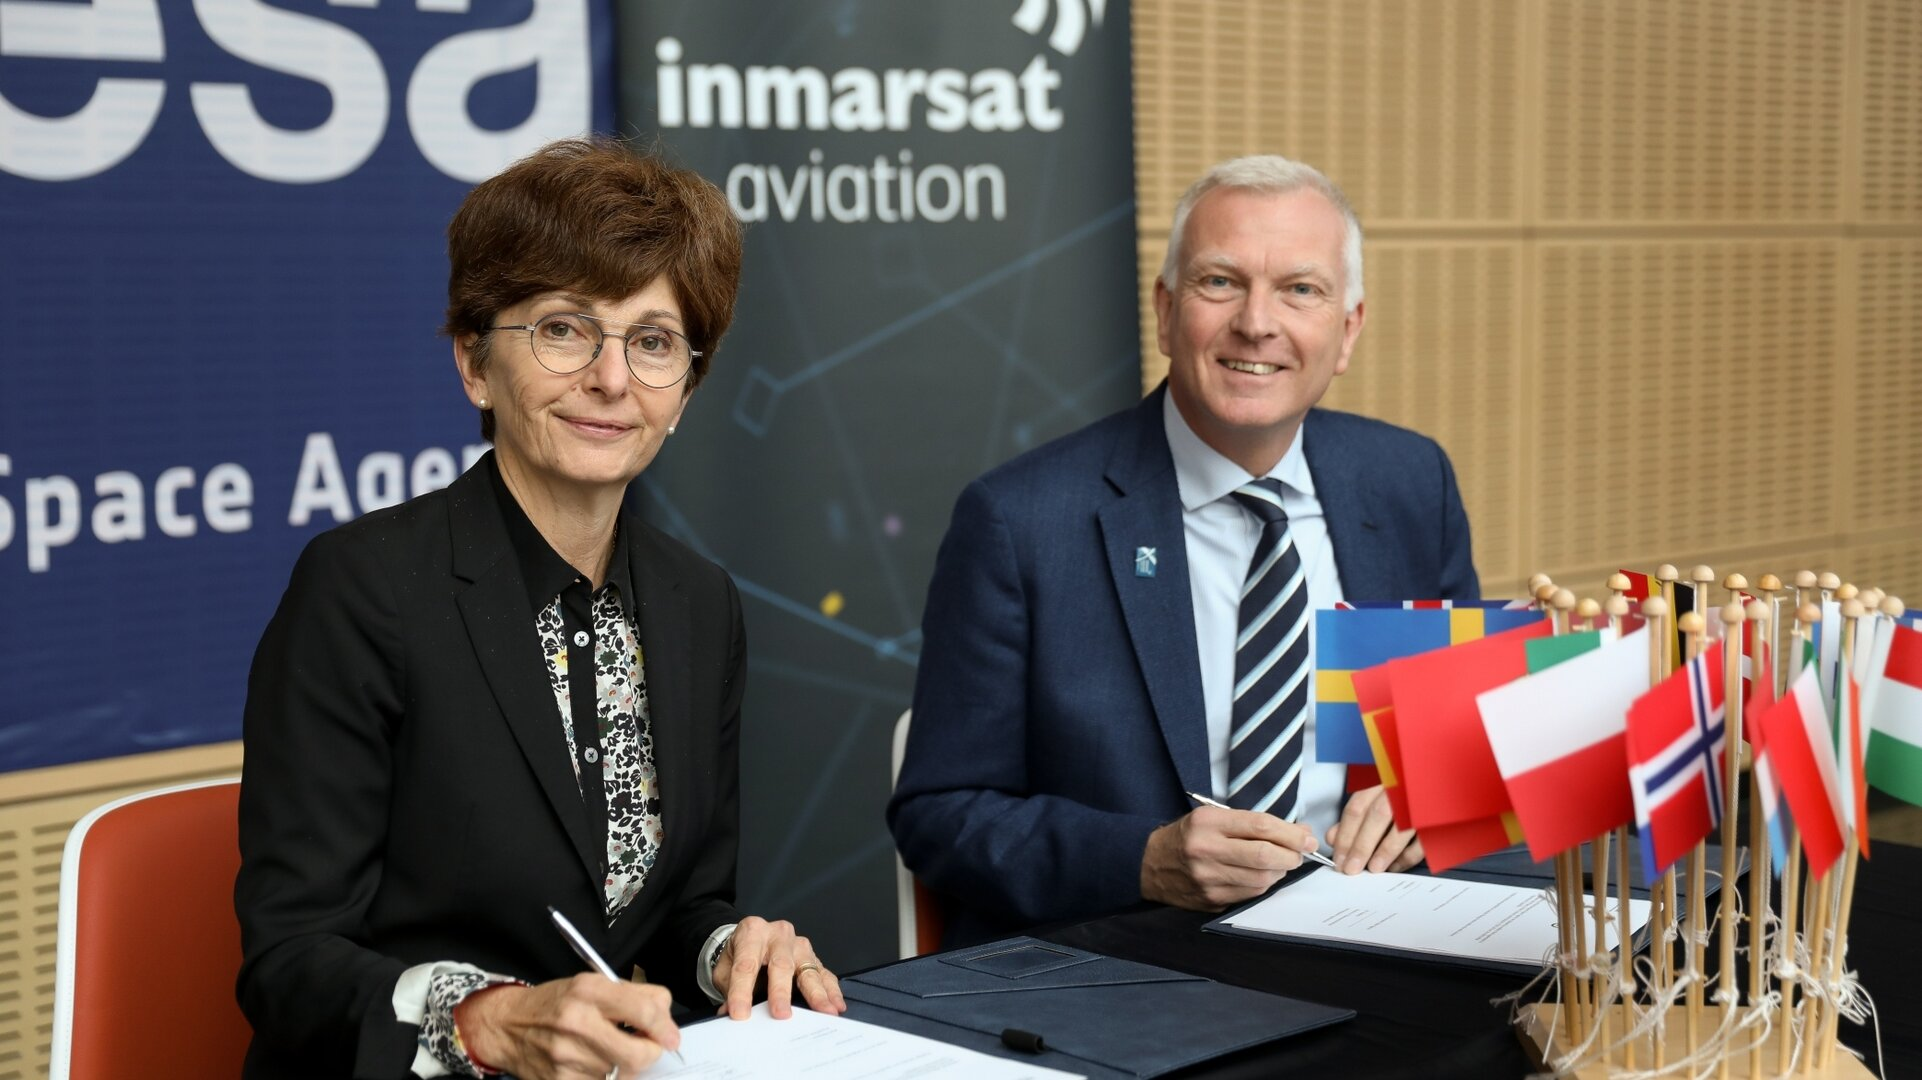 Magali Vaissiere, Director of Telecommunications and Integrated Applications at ESA, and Phil Balaam, President of Inmarsat Aviation